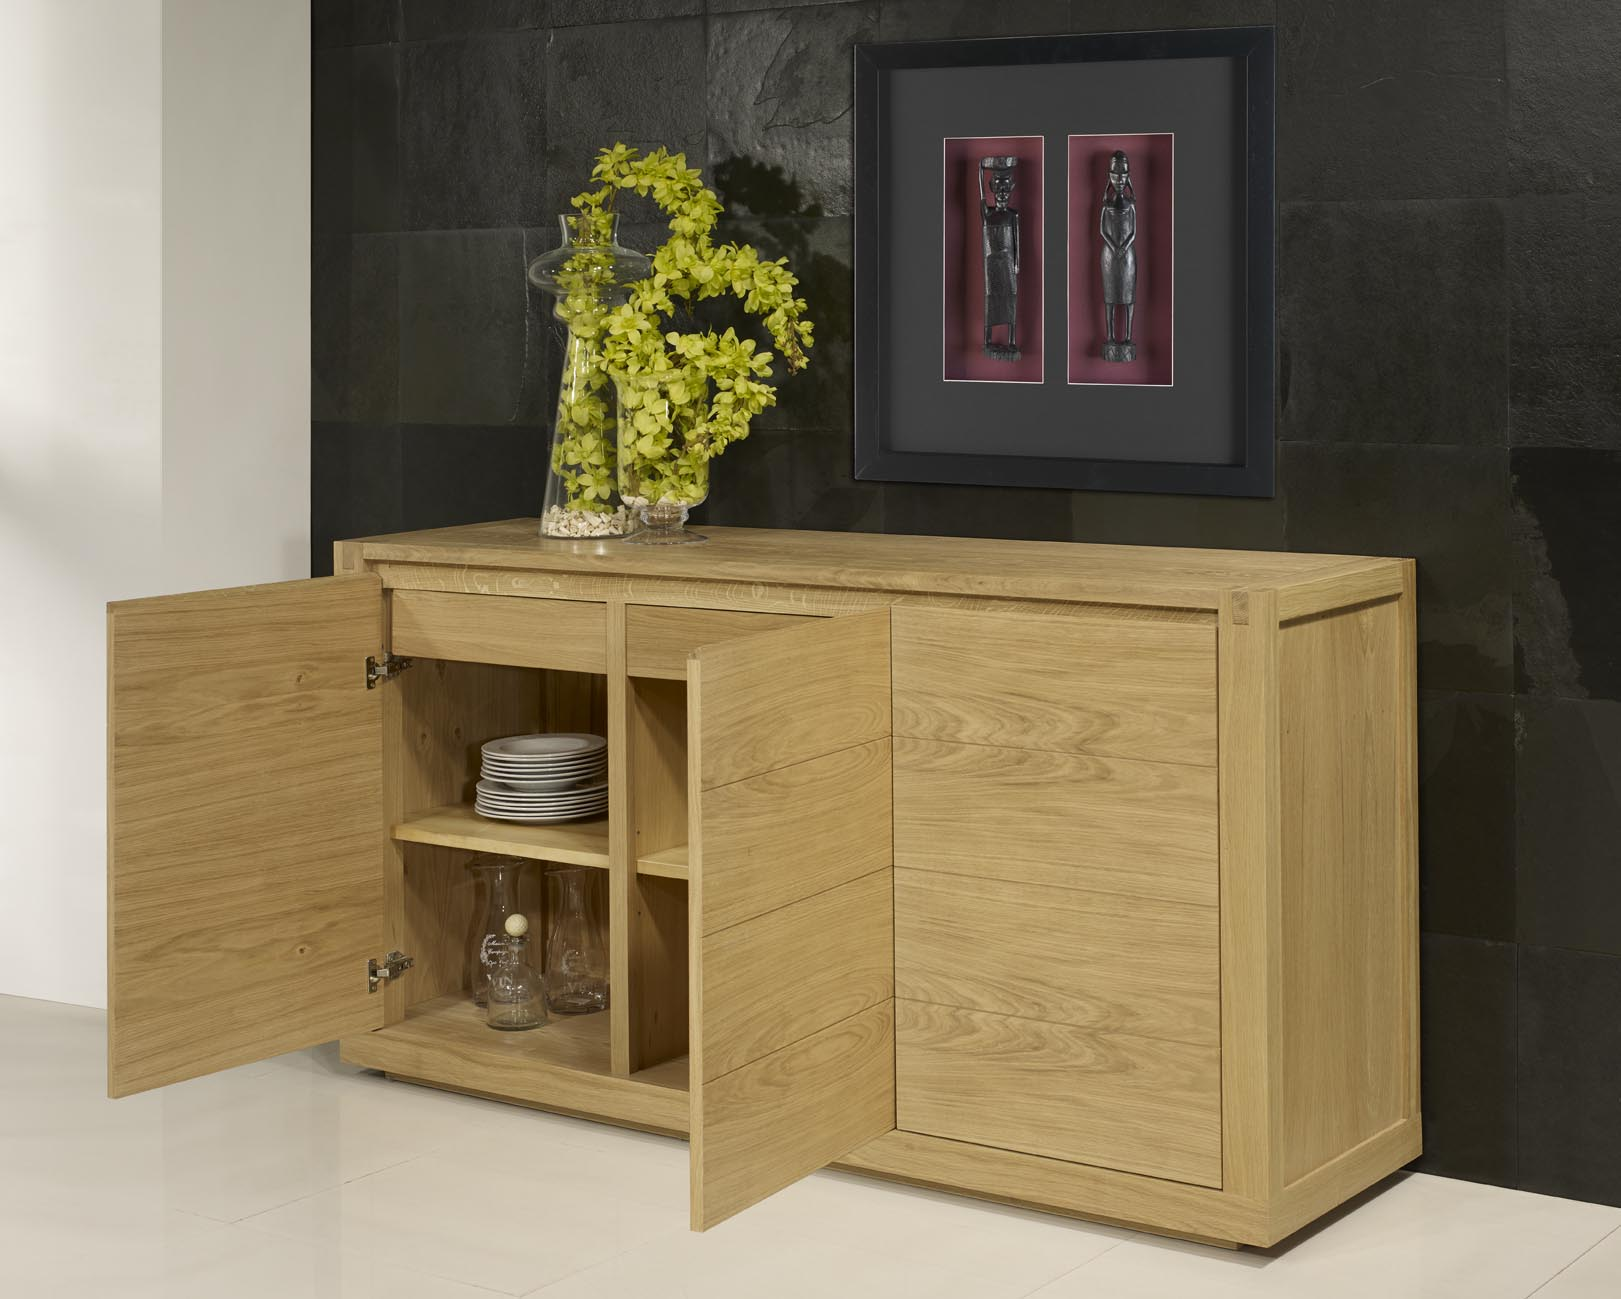 Buffet 3 portes mathis en ch ne de style contemporain finition ch ne bross n - Buffet bois contemporain ...